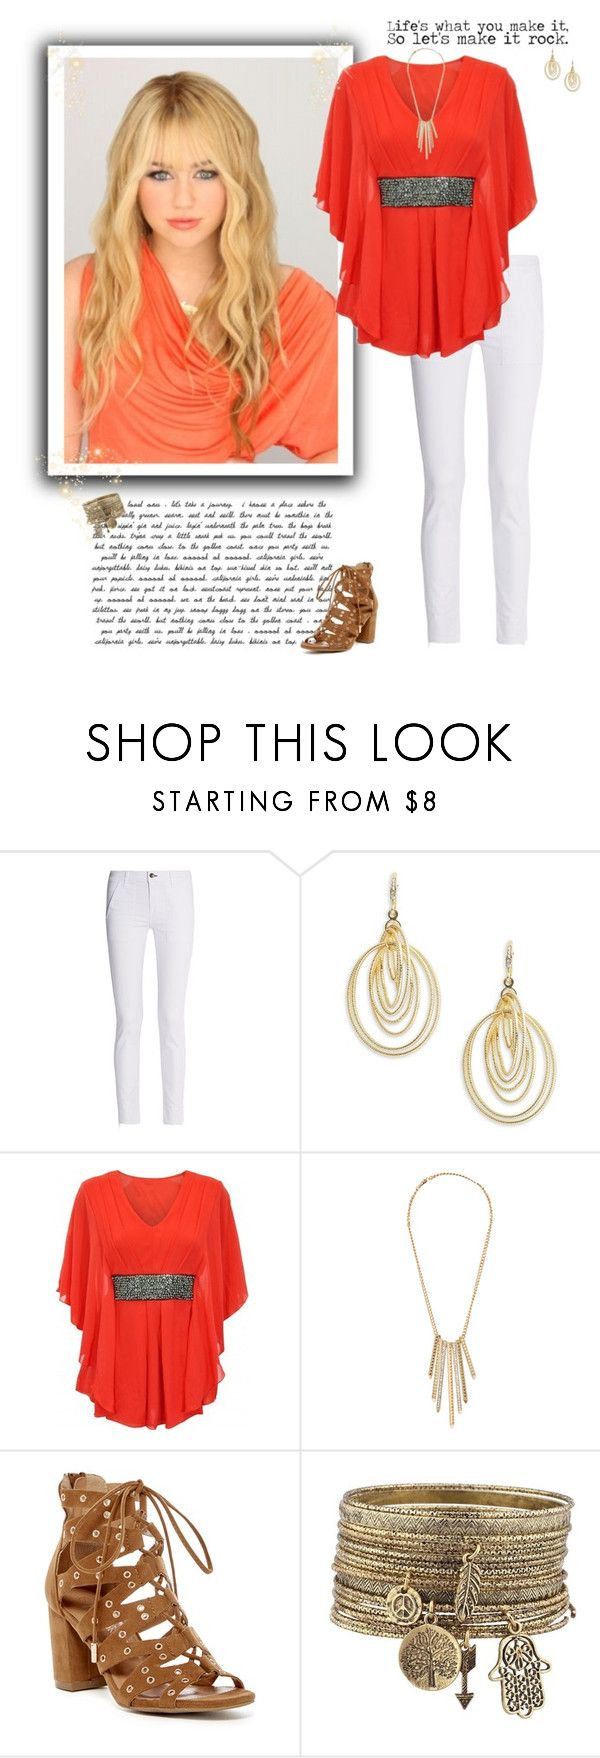 """Hannah Montana"" by greerflower ❤ liked on Polyvore featuring rag & bone, ABS by Allen Schwartz, Forever 21 and Nature Breeze"